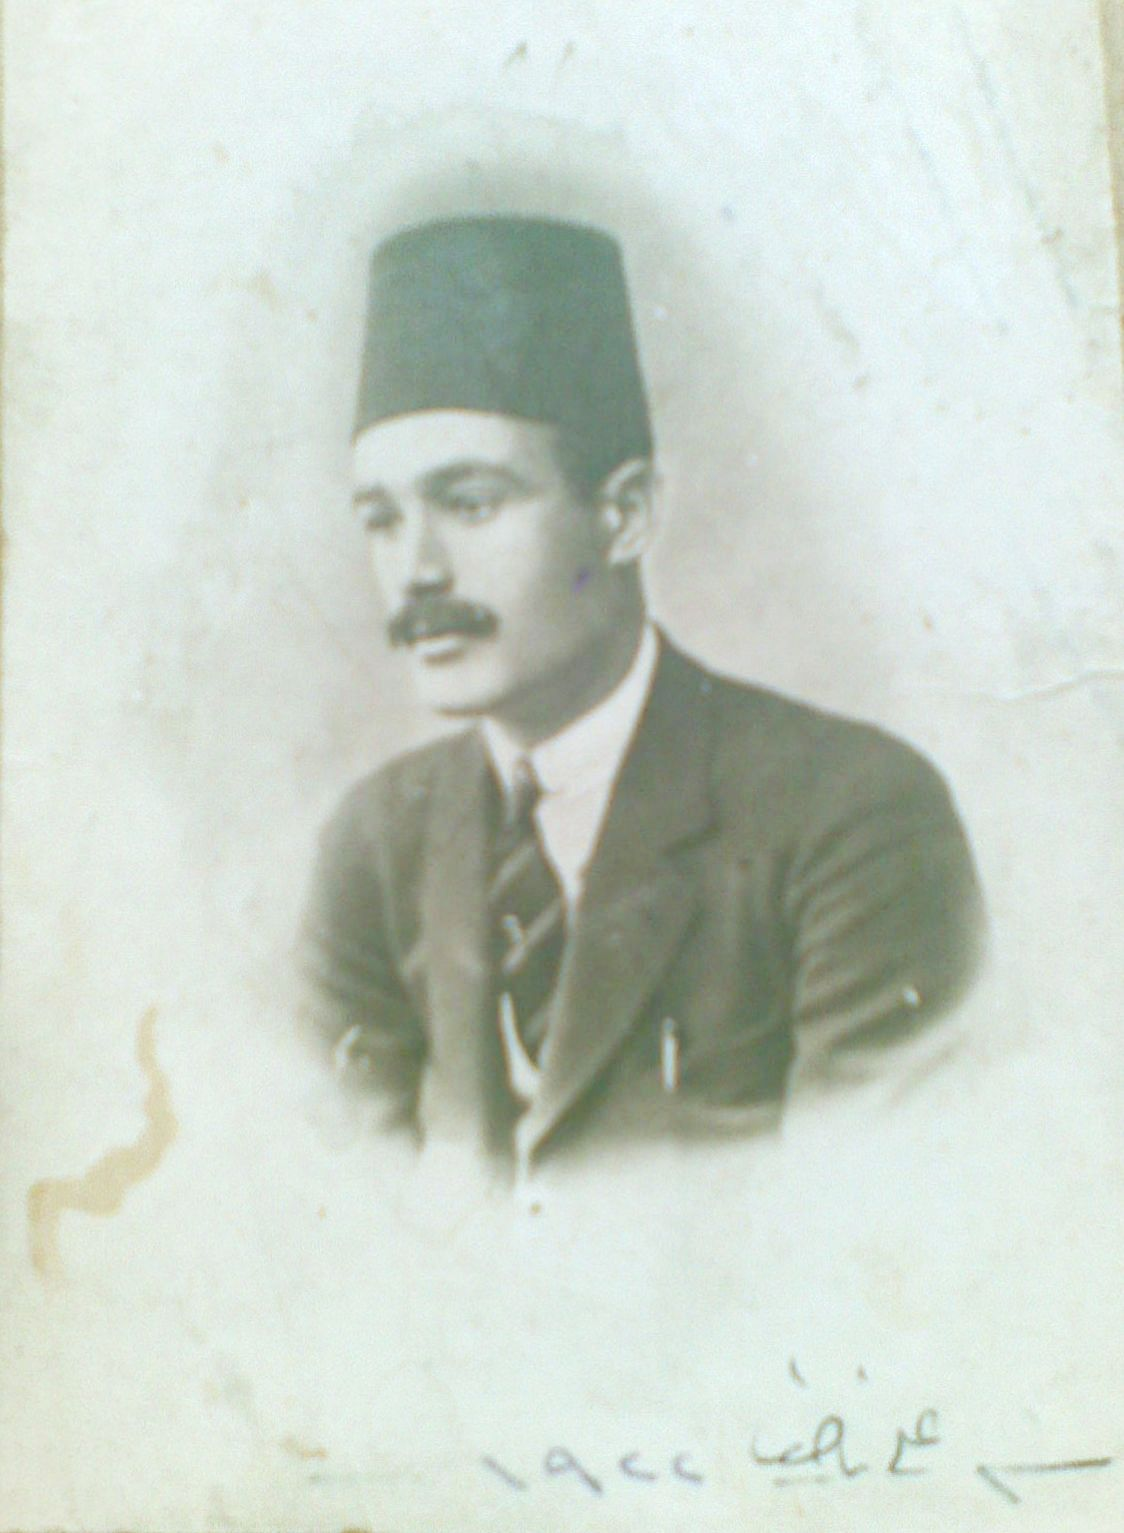 Grandfather Aly Nassef